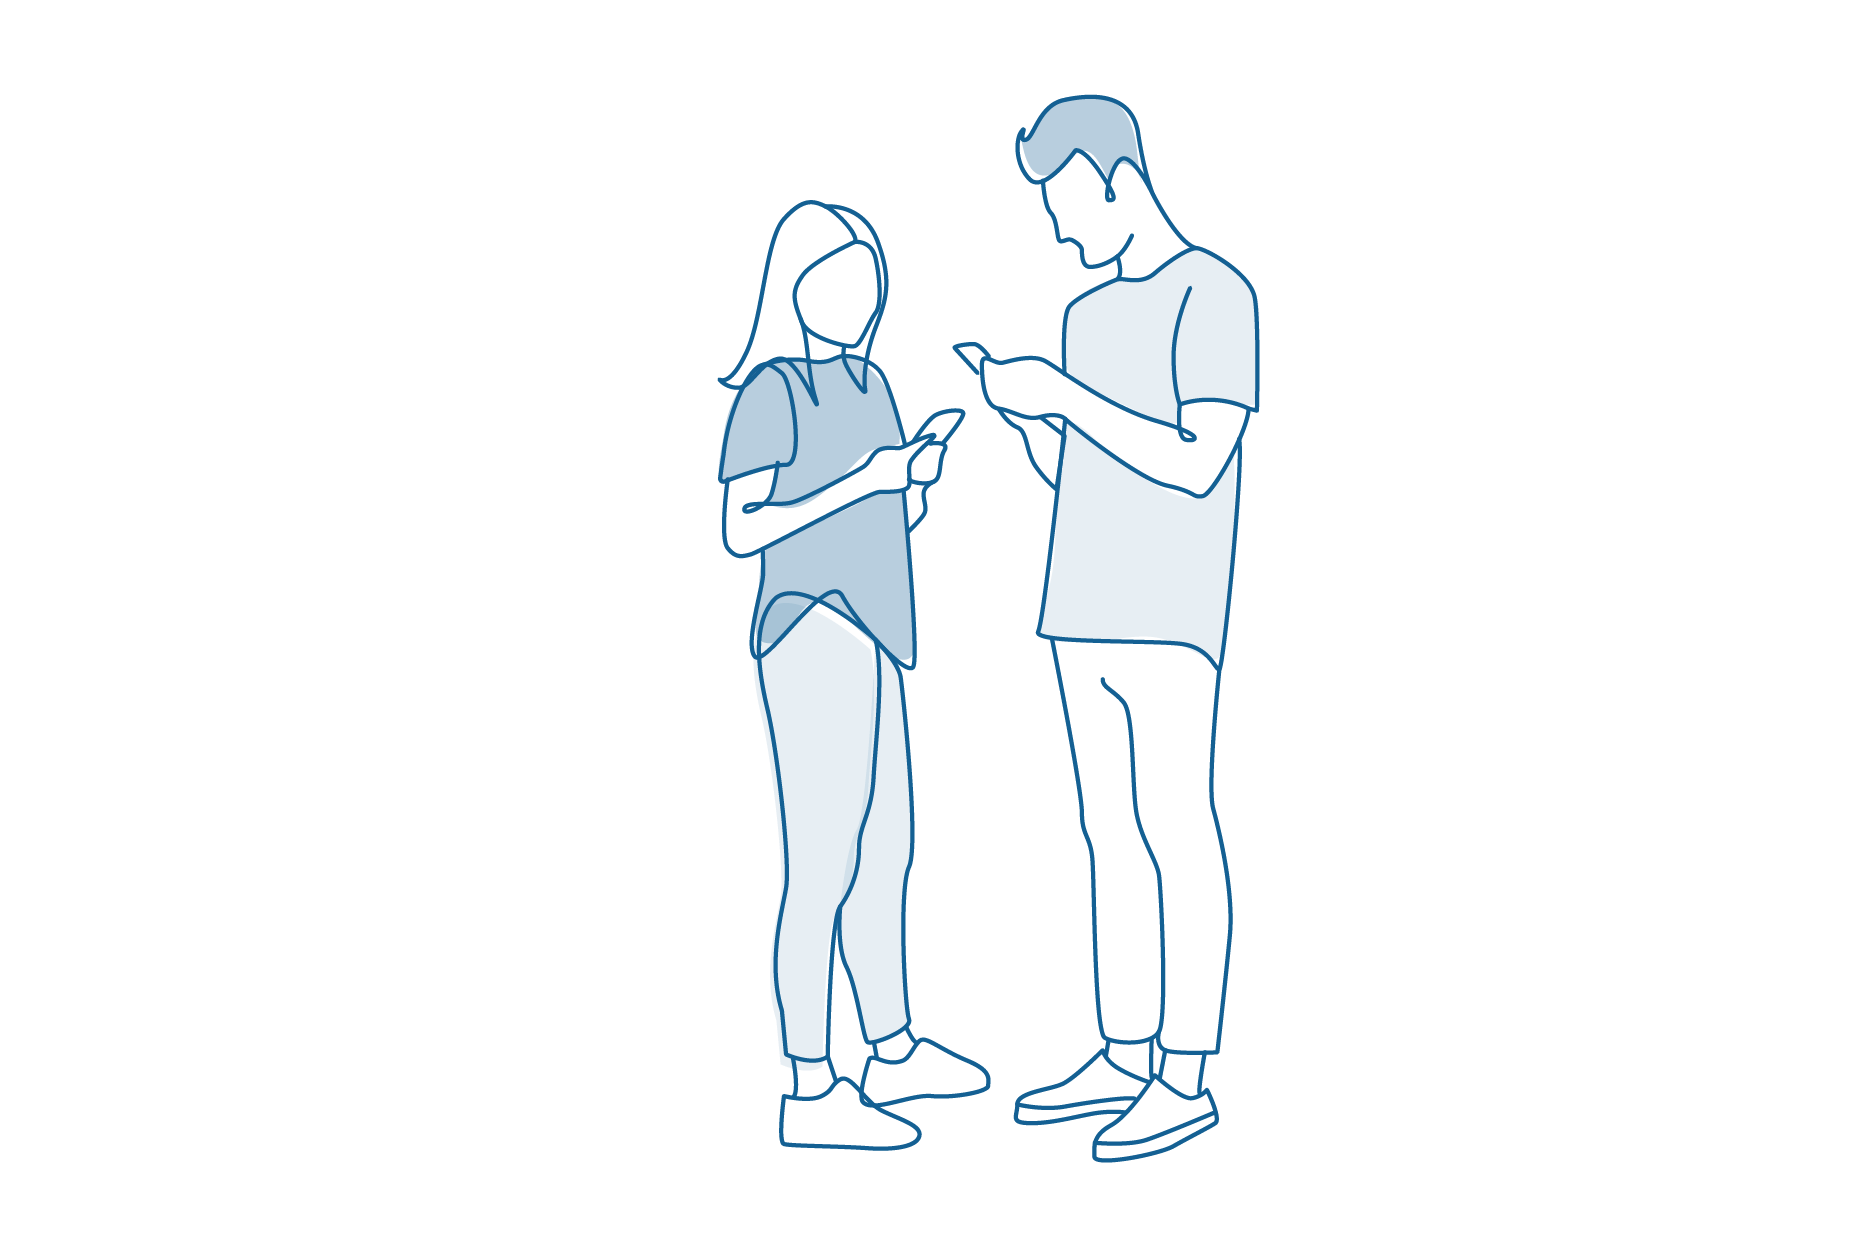 Line drawing of man and woman holding phones.